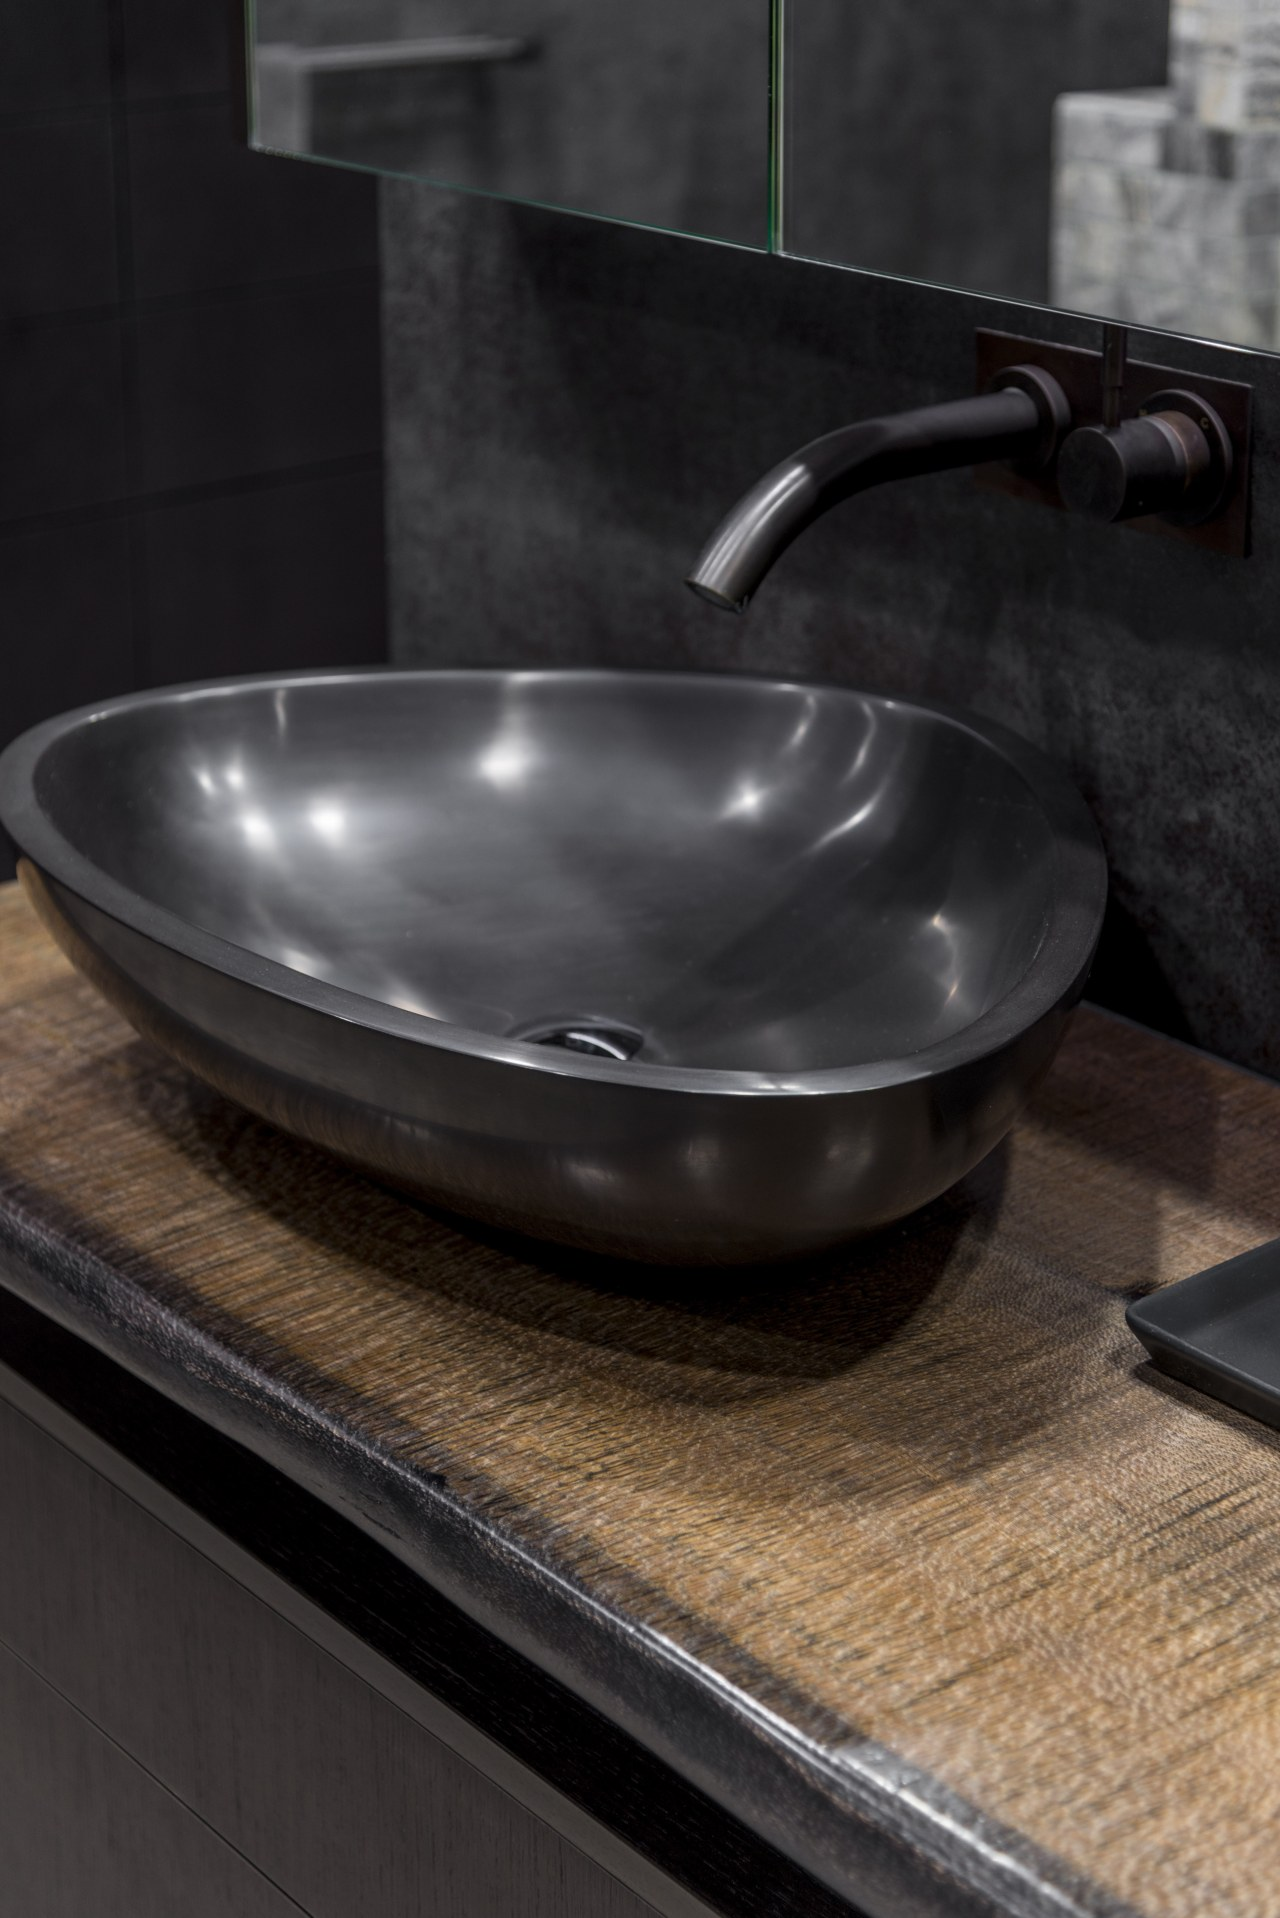 Engineered stone benchtop vessels add to other curved cookware and bakeware, plumbing fixture, sink, black